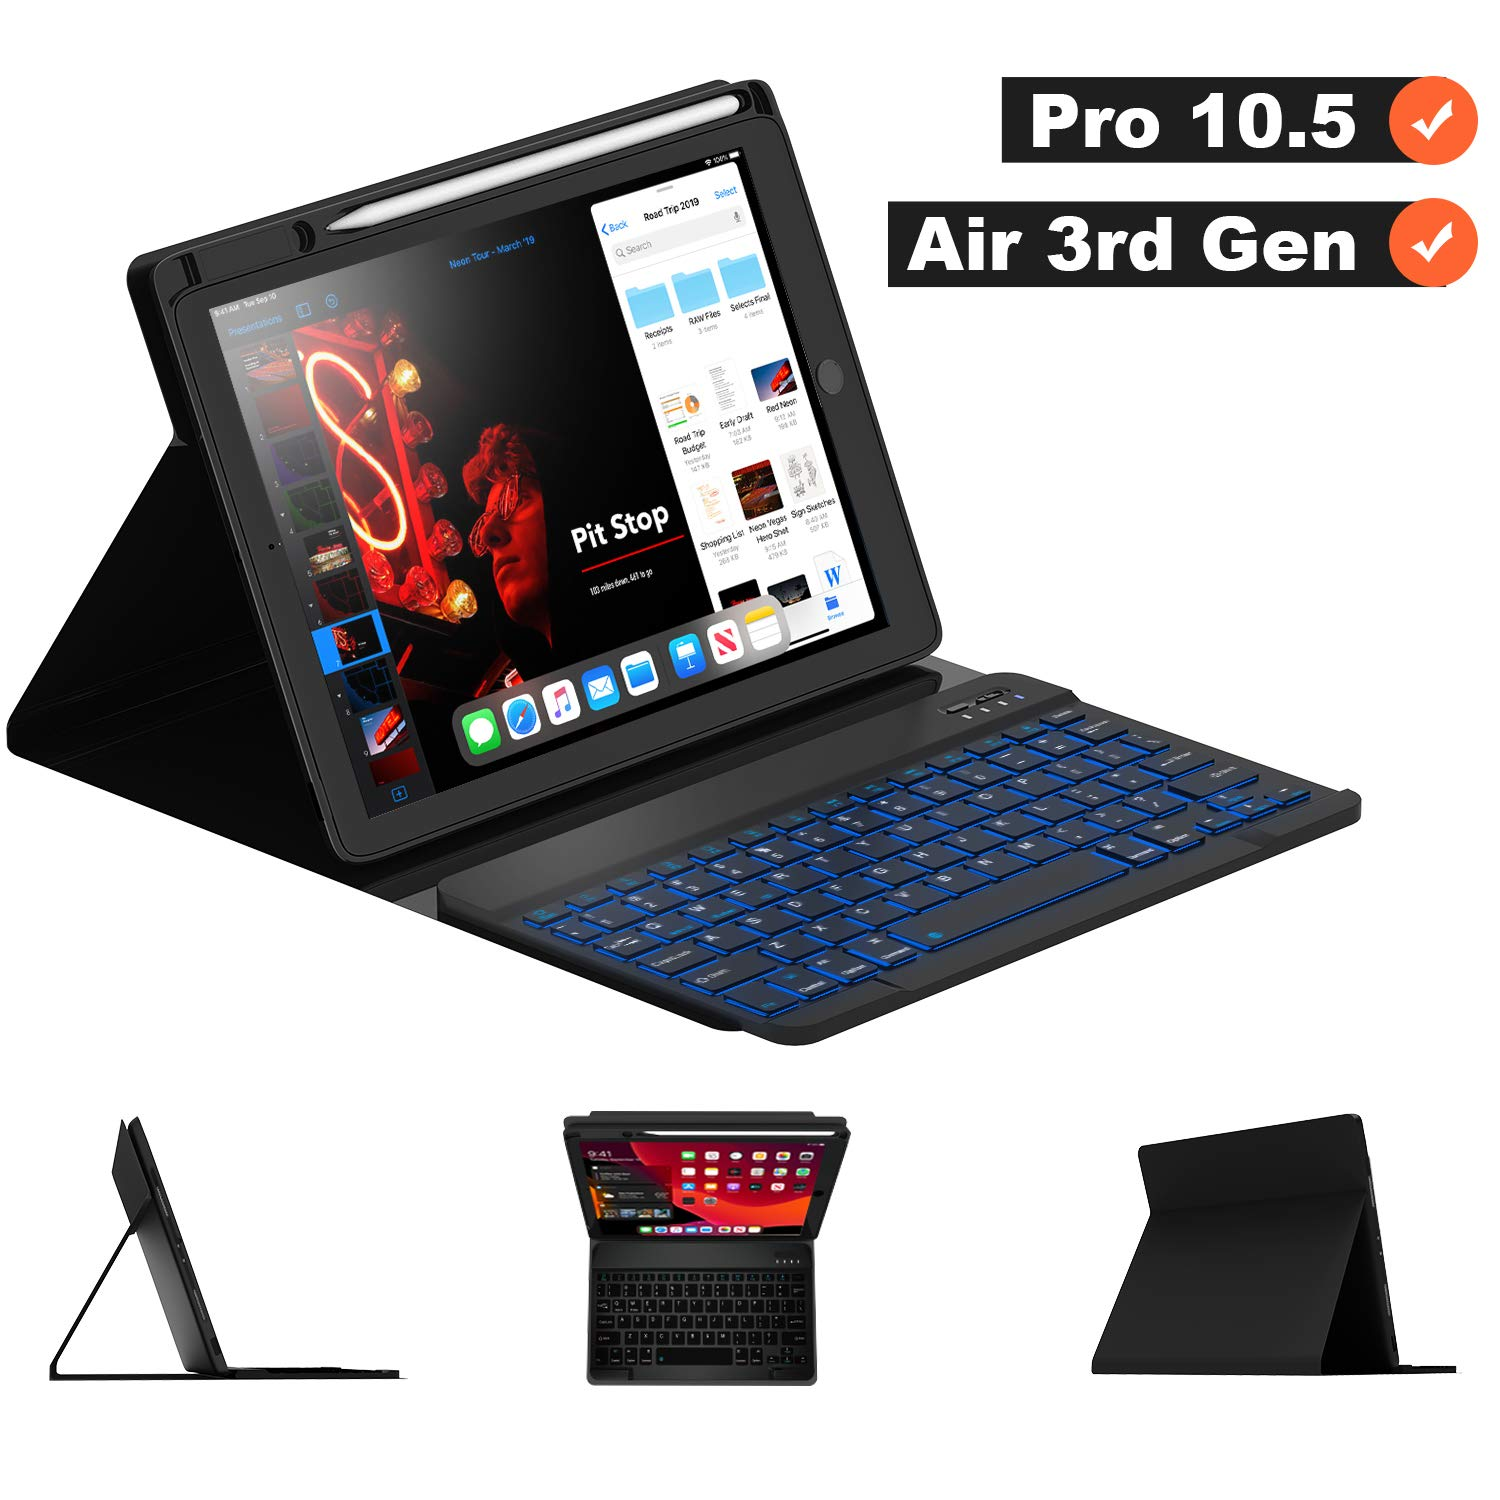 """Maxfree iPad Pro 10.5 2017 Keyboard Case for iPad Air 3rd Gen 10.5 2019, 7 Colors Backlight, Detachable Wireless Auto Sleep Keyboard with Pencil Holder, Full Folio Cover for iPad 10.5"""", Black"""